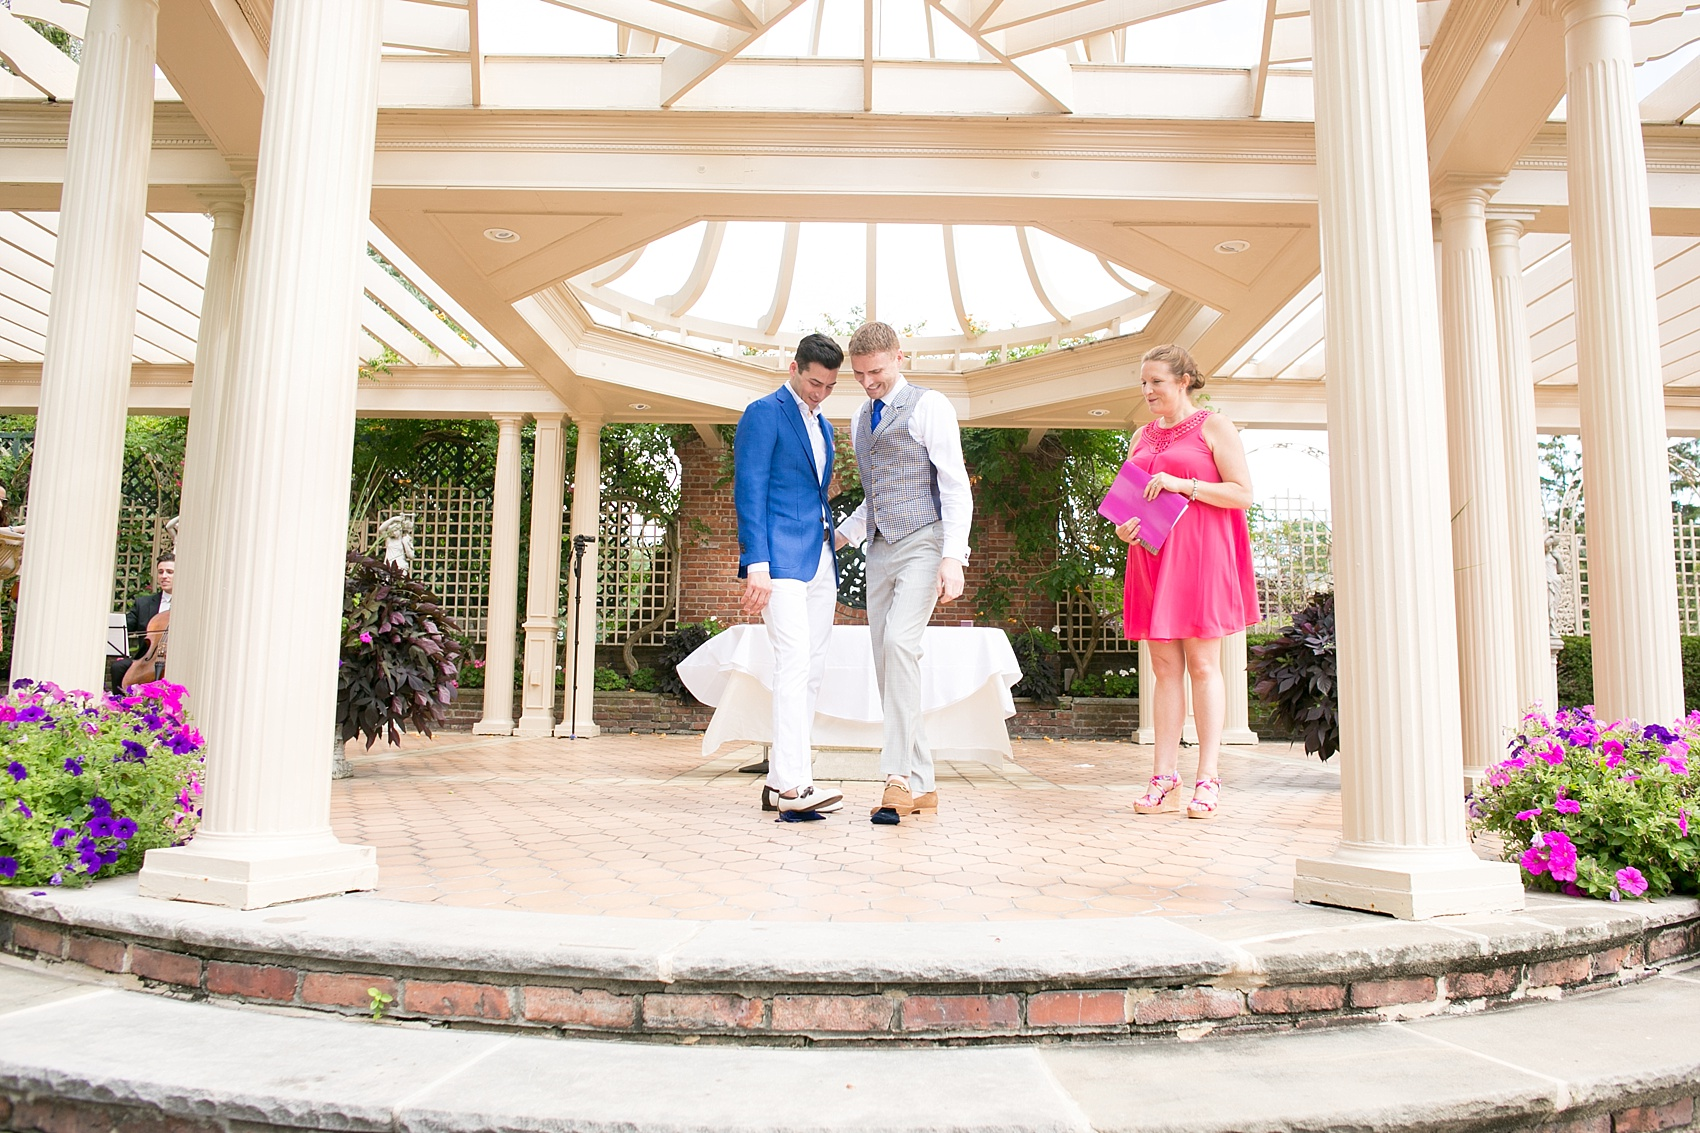 Mikkel Paige Photography photos of a gay wedding at The Manor in West Orange, NJ. Image of grooms stepping on the glass during their outdoor ceremony.